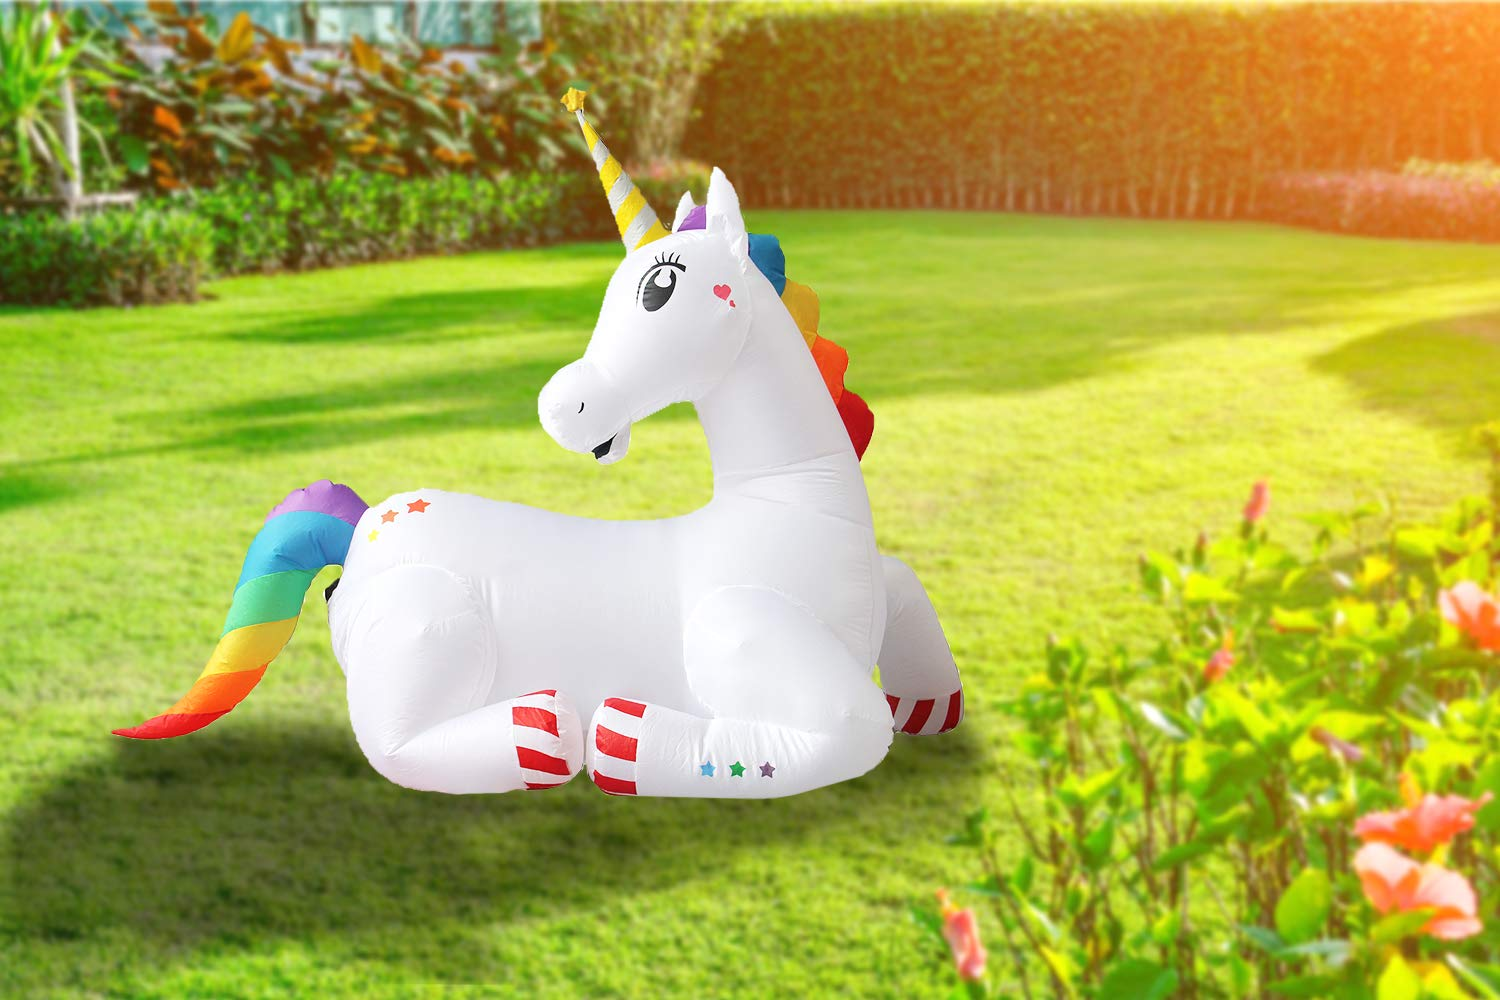 SEASONBLOW 5 Ft Inflatable Unicorn Sitting Indoor Outdoor Home Party Lawn Yard Garden Decoration